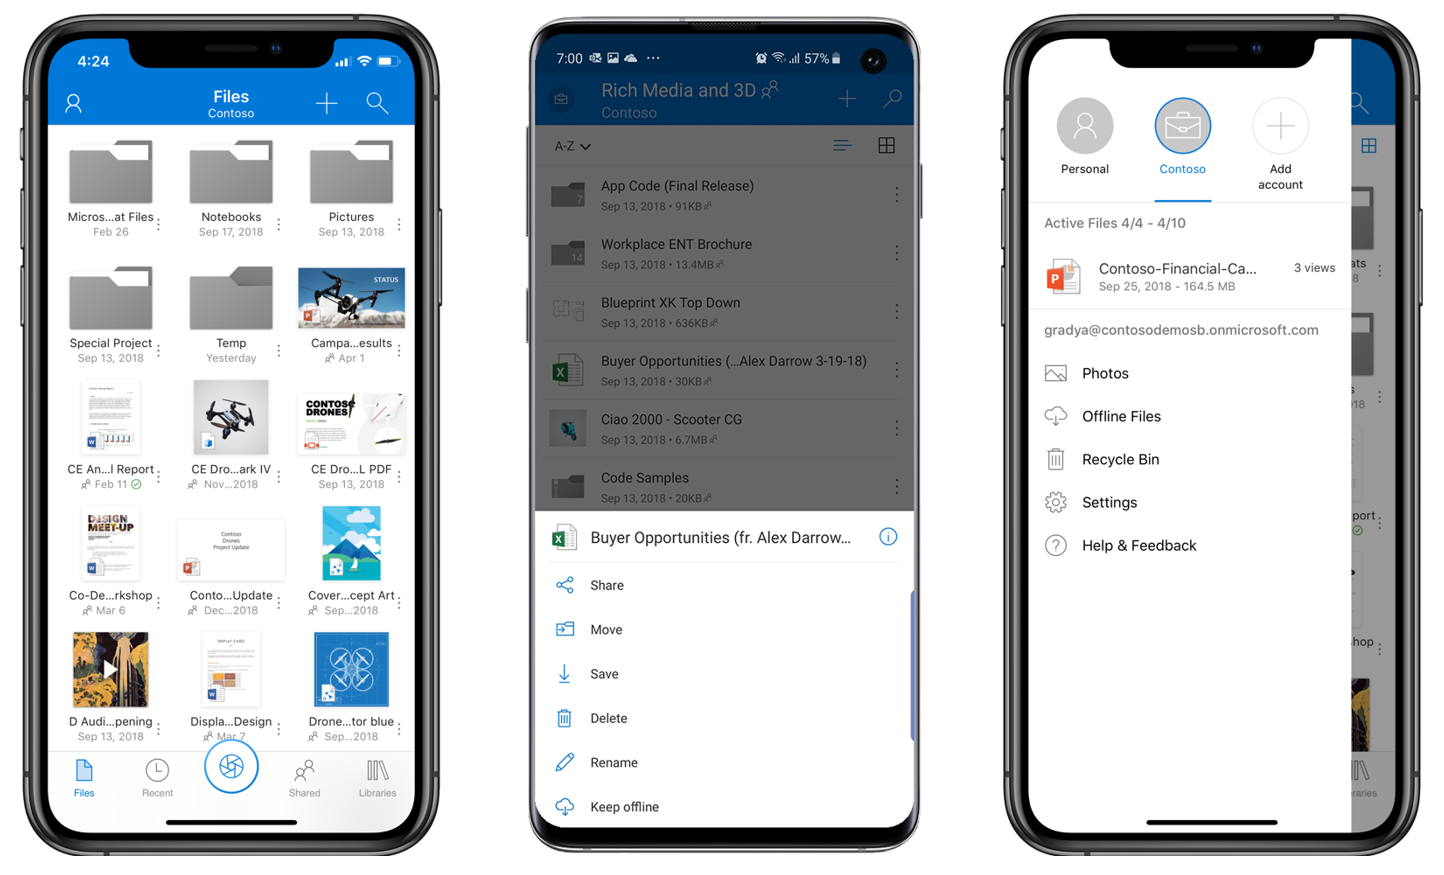 Top 5 benefits of the OneDrive mobile app